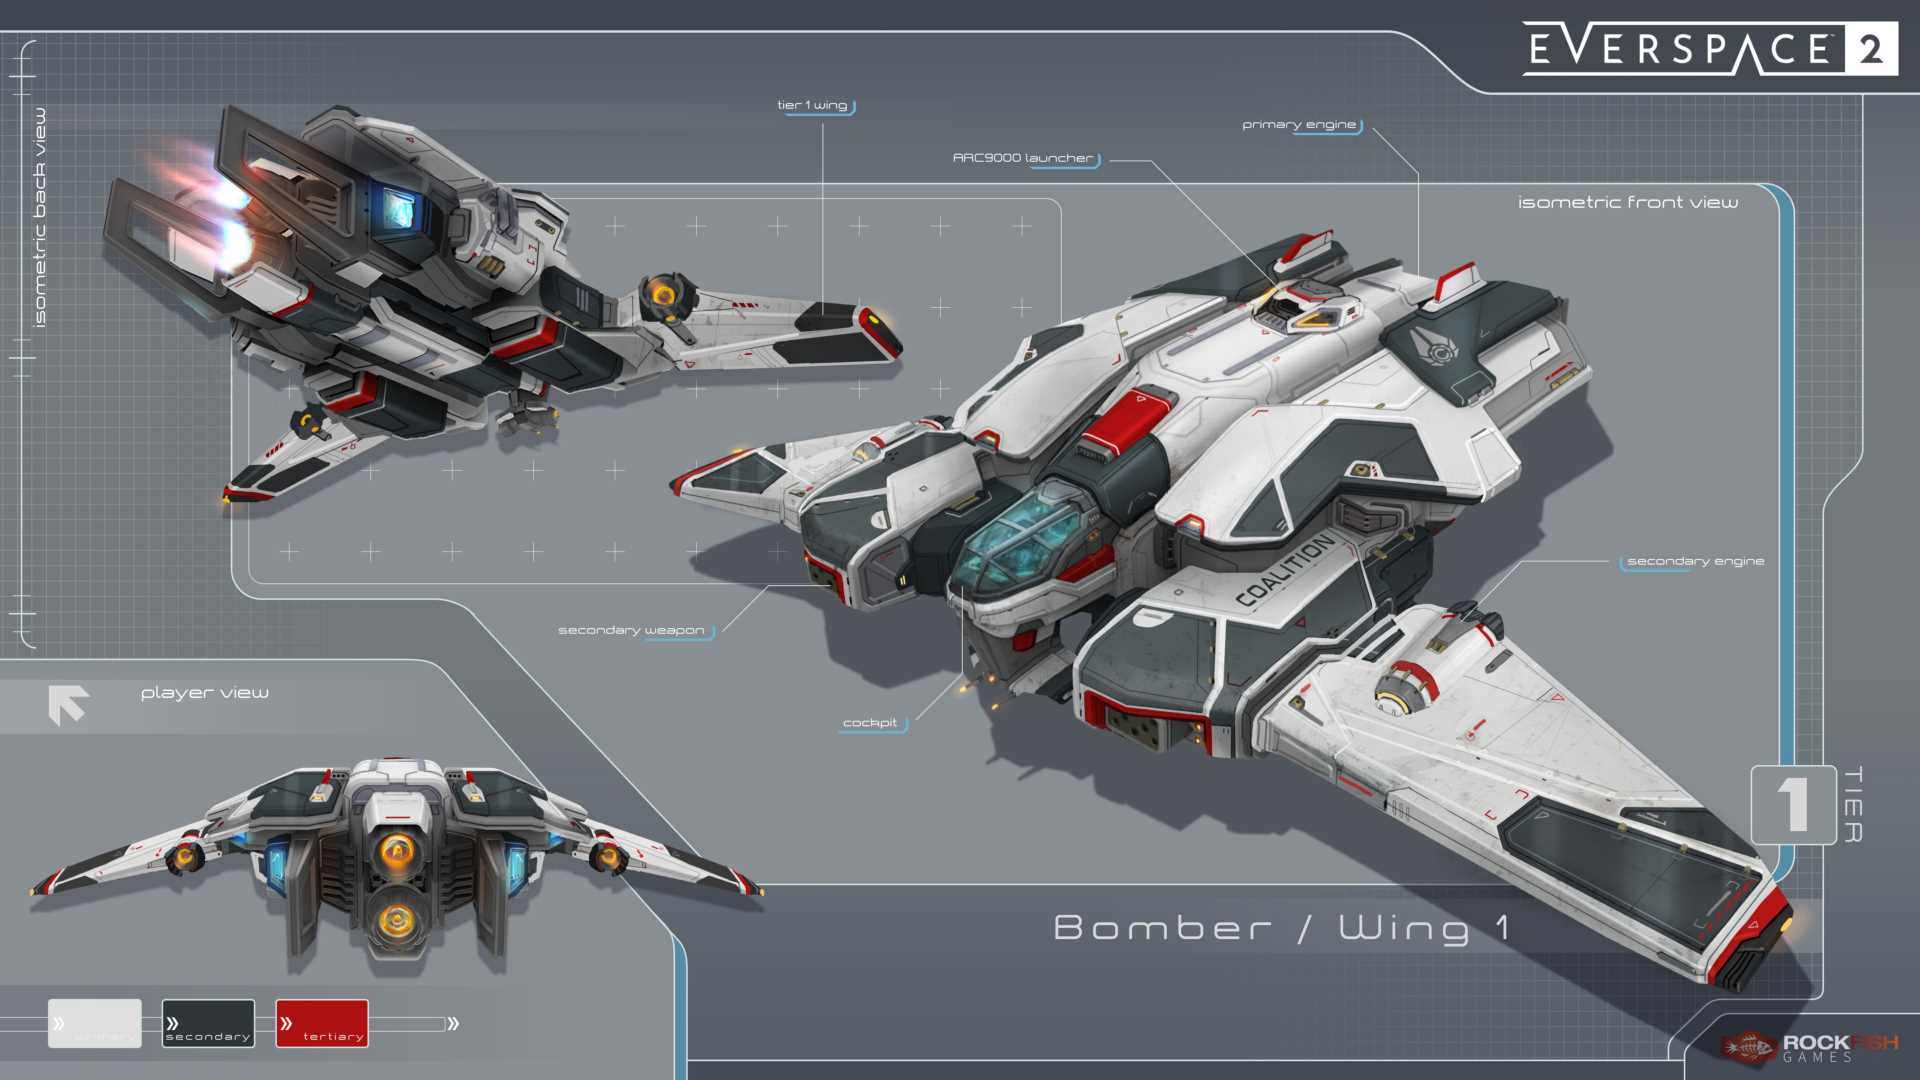 Everspace 2 Early Access Roadmap Bomber